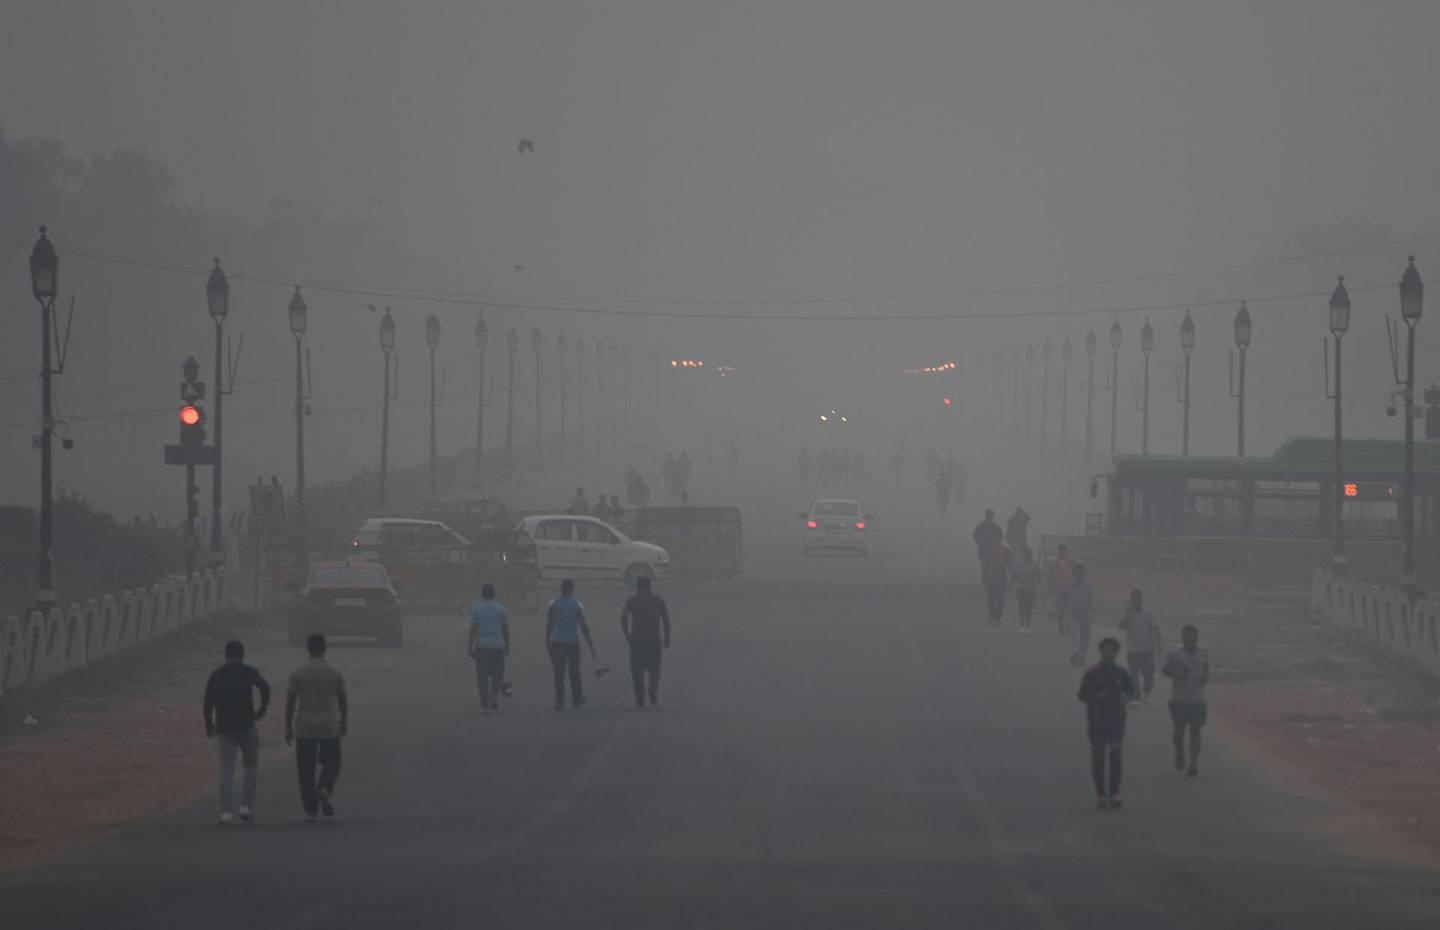 (FILES) In this file photo taken on November 2, 2018 Indian pedestrians walk amid heavy smog conditions in New Delhi. Residents of the Indian capital New Delhi lose on average ten years off their life expectancy due to the catastrophic effect of the city's air pollution, compared to their expected life longevity if they were breathing healthy air, according to a study published by the University of Chicago on November 19. / AFP / Money SHARMA